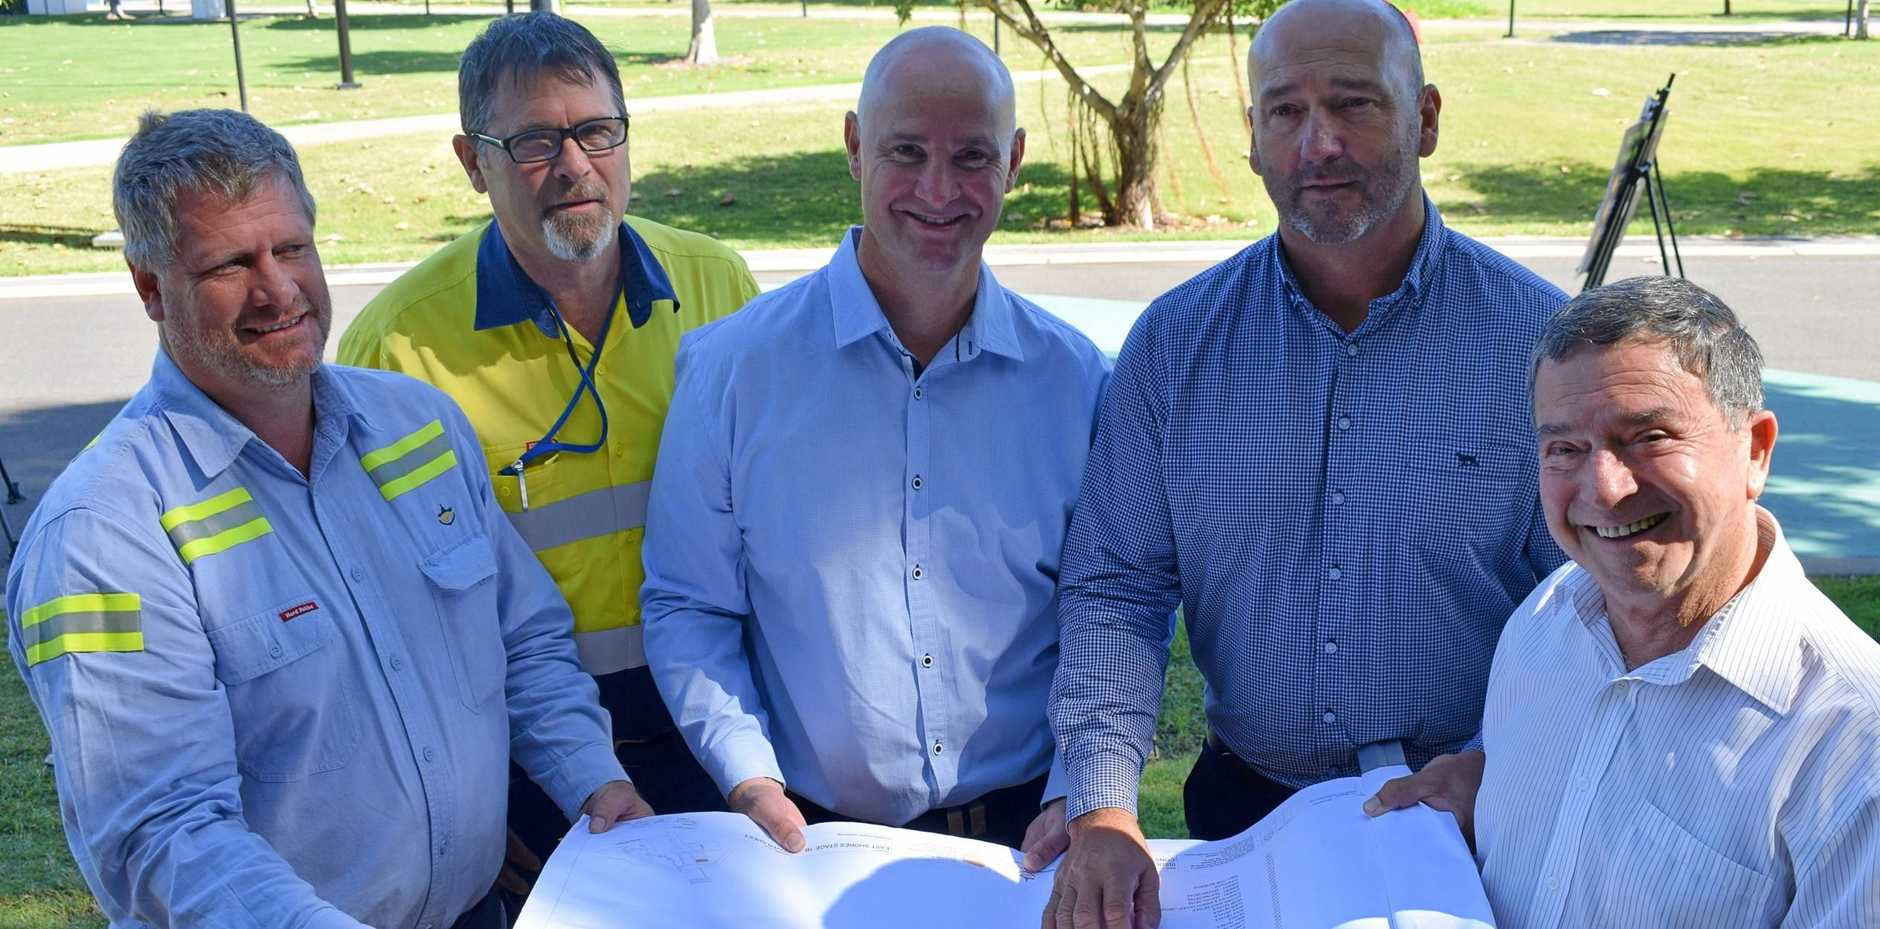 Owen Barton, Duncan Howard, State member Glenn Butcher, Craig Walker Acting Chief Executive of Gladstone Ports Corporation and Peter Corones AM Chairman of Gladstone Ports Corporation unveil the plans for the East Shores upgrade Stage 1B.